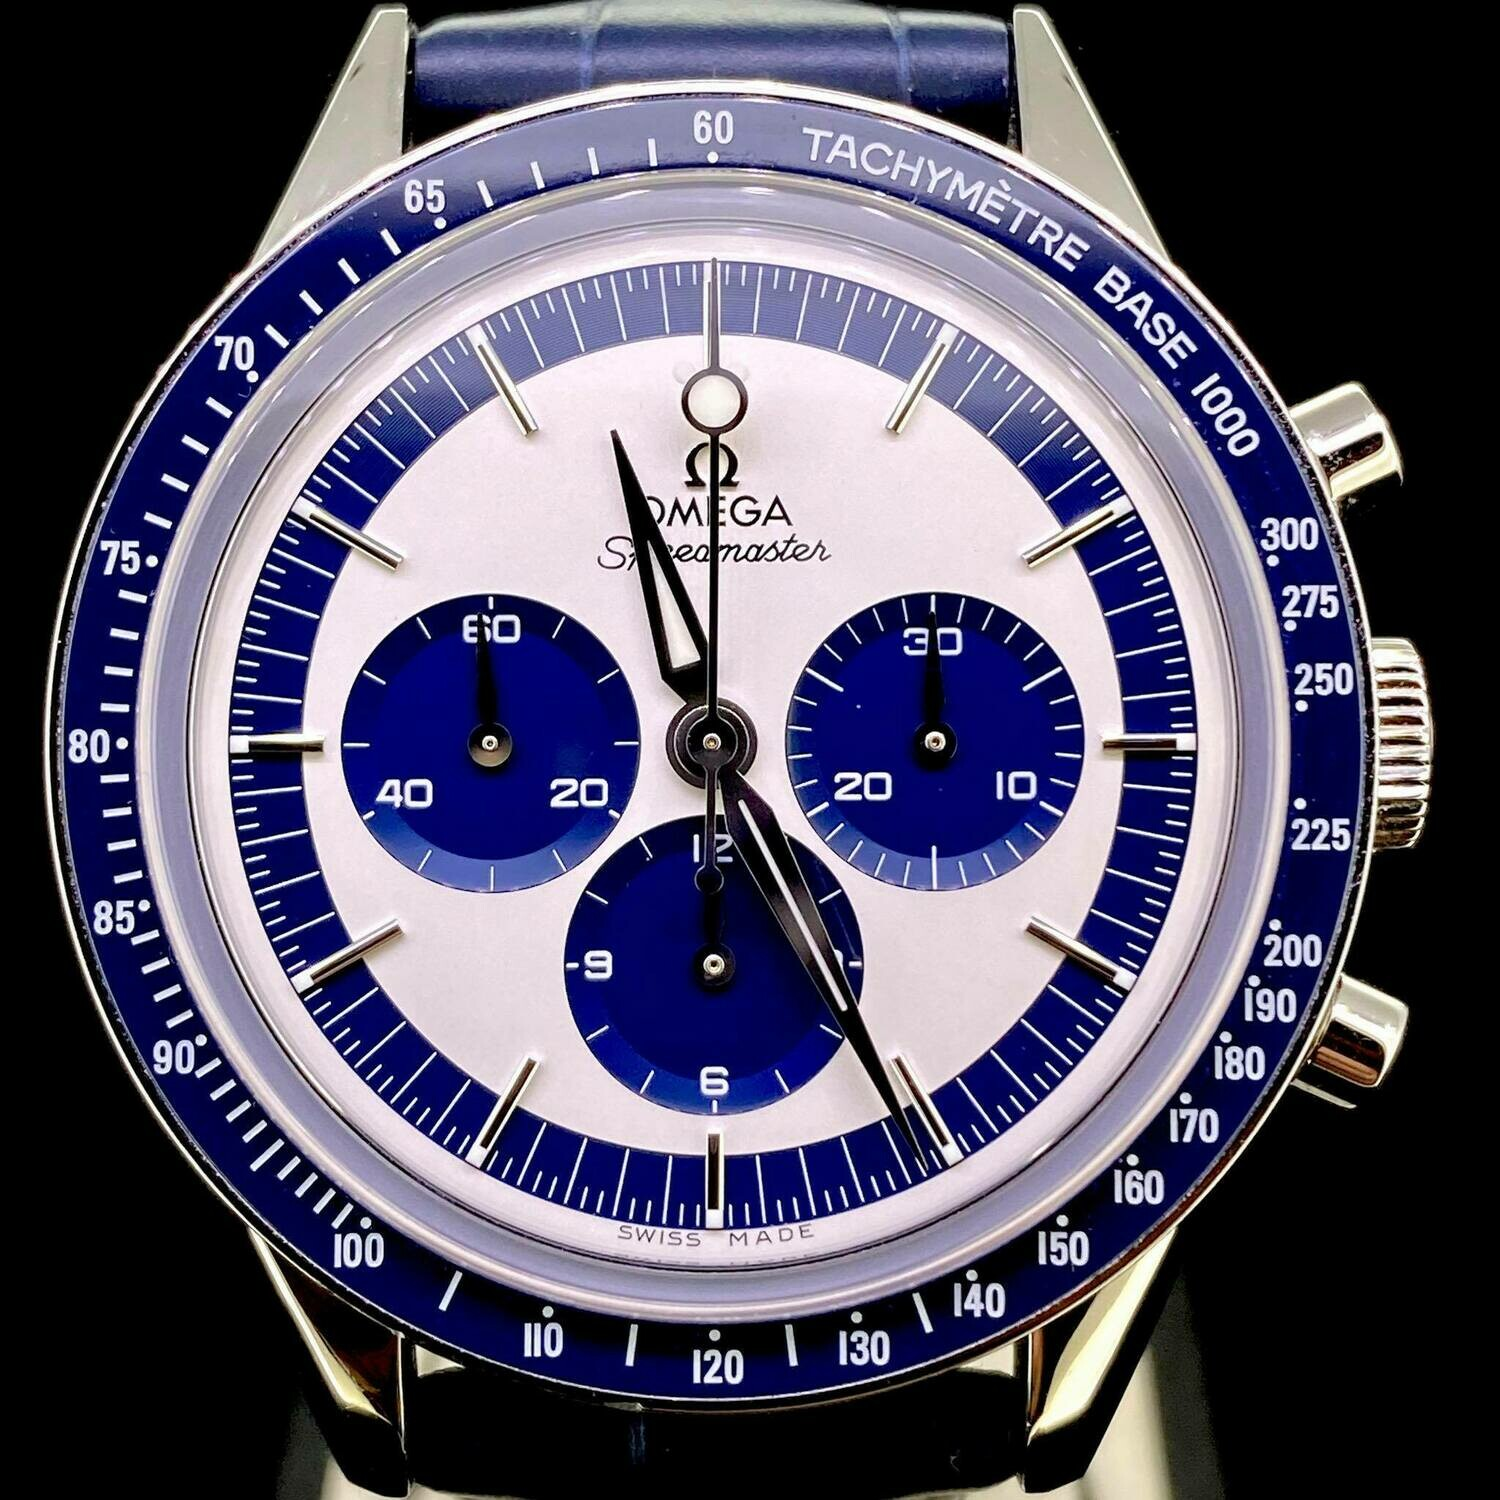 Omega Speedmaster Moonwatch Ck2998 Chronograph Steel 40MM Limited Edition Blue/White Dial MINT